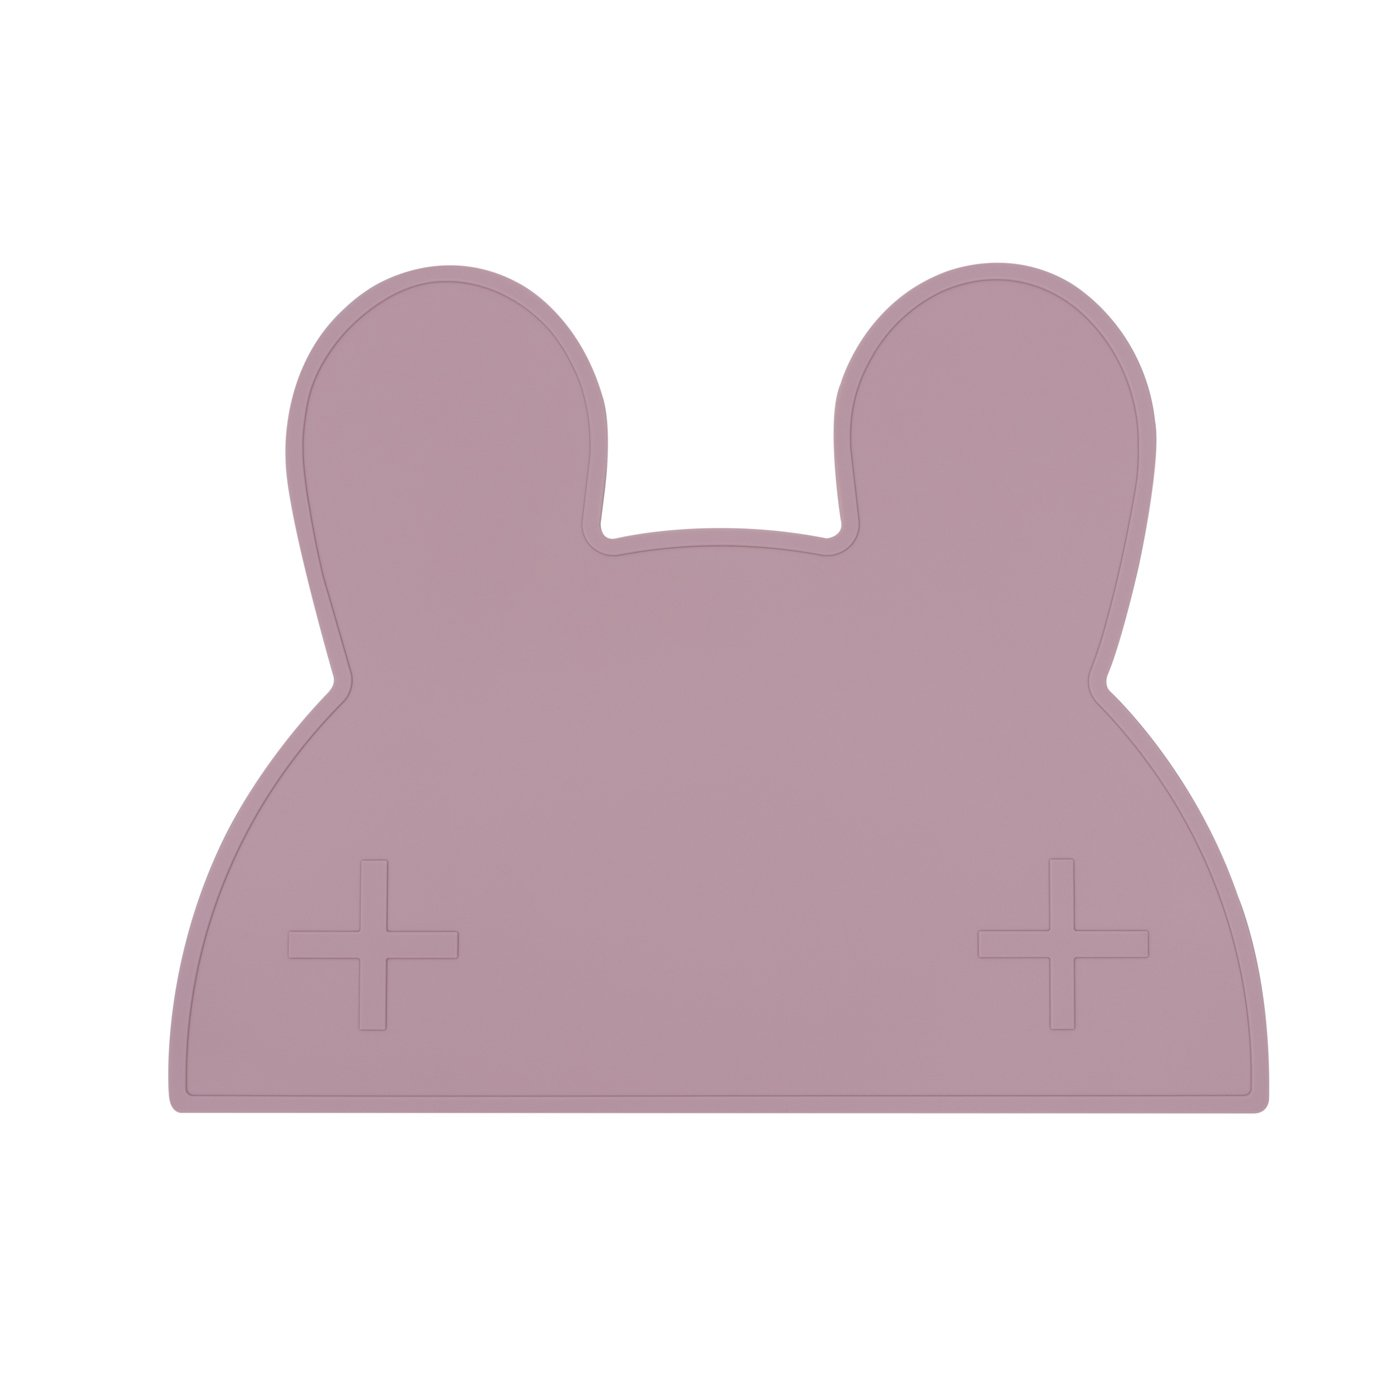 Bunny Placemat (Dusty Rose)